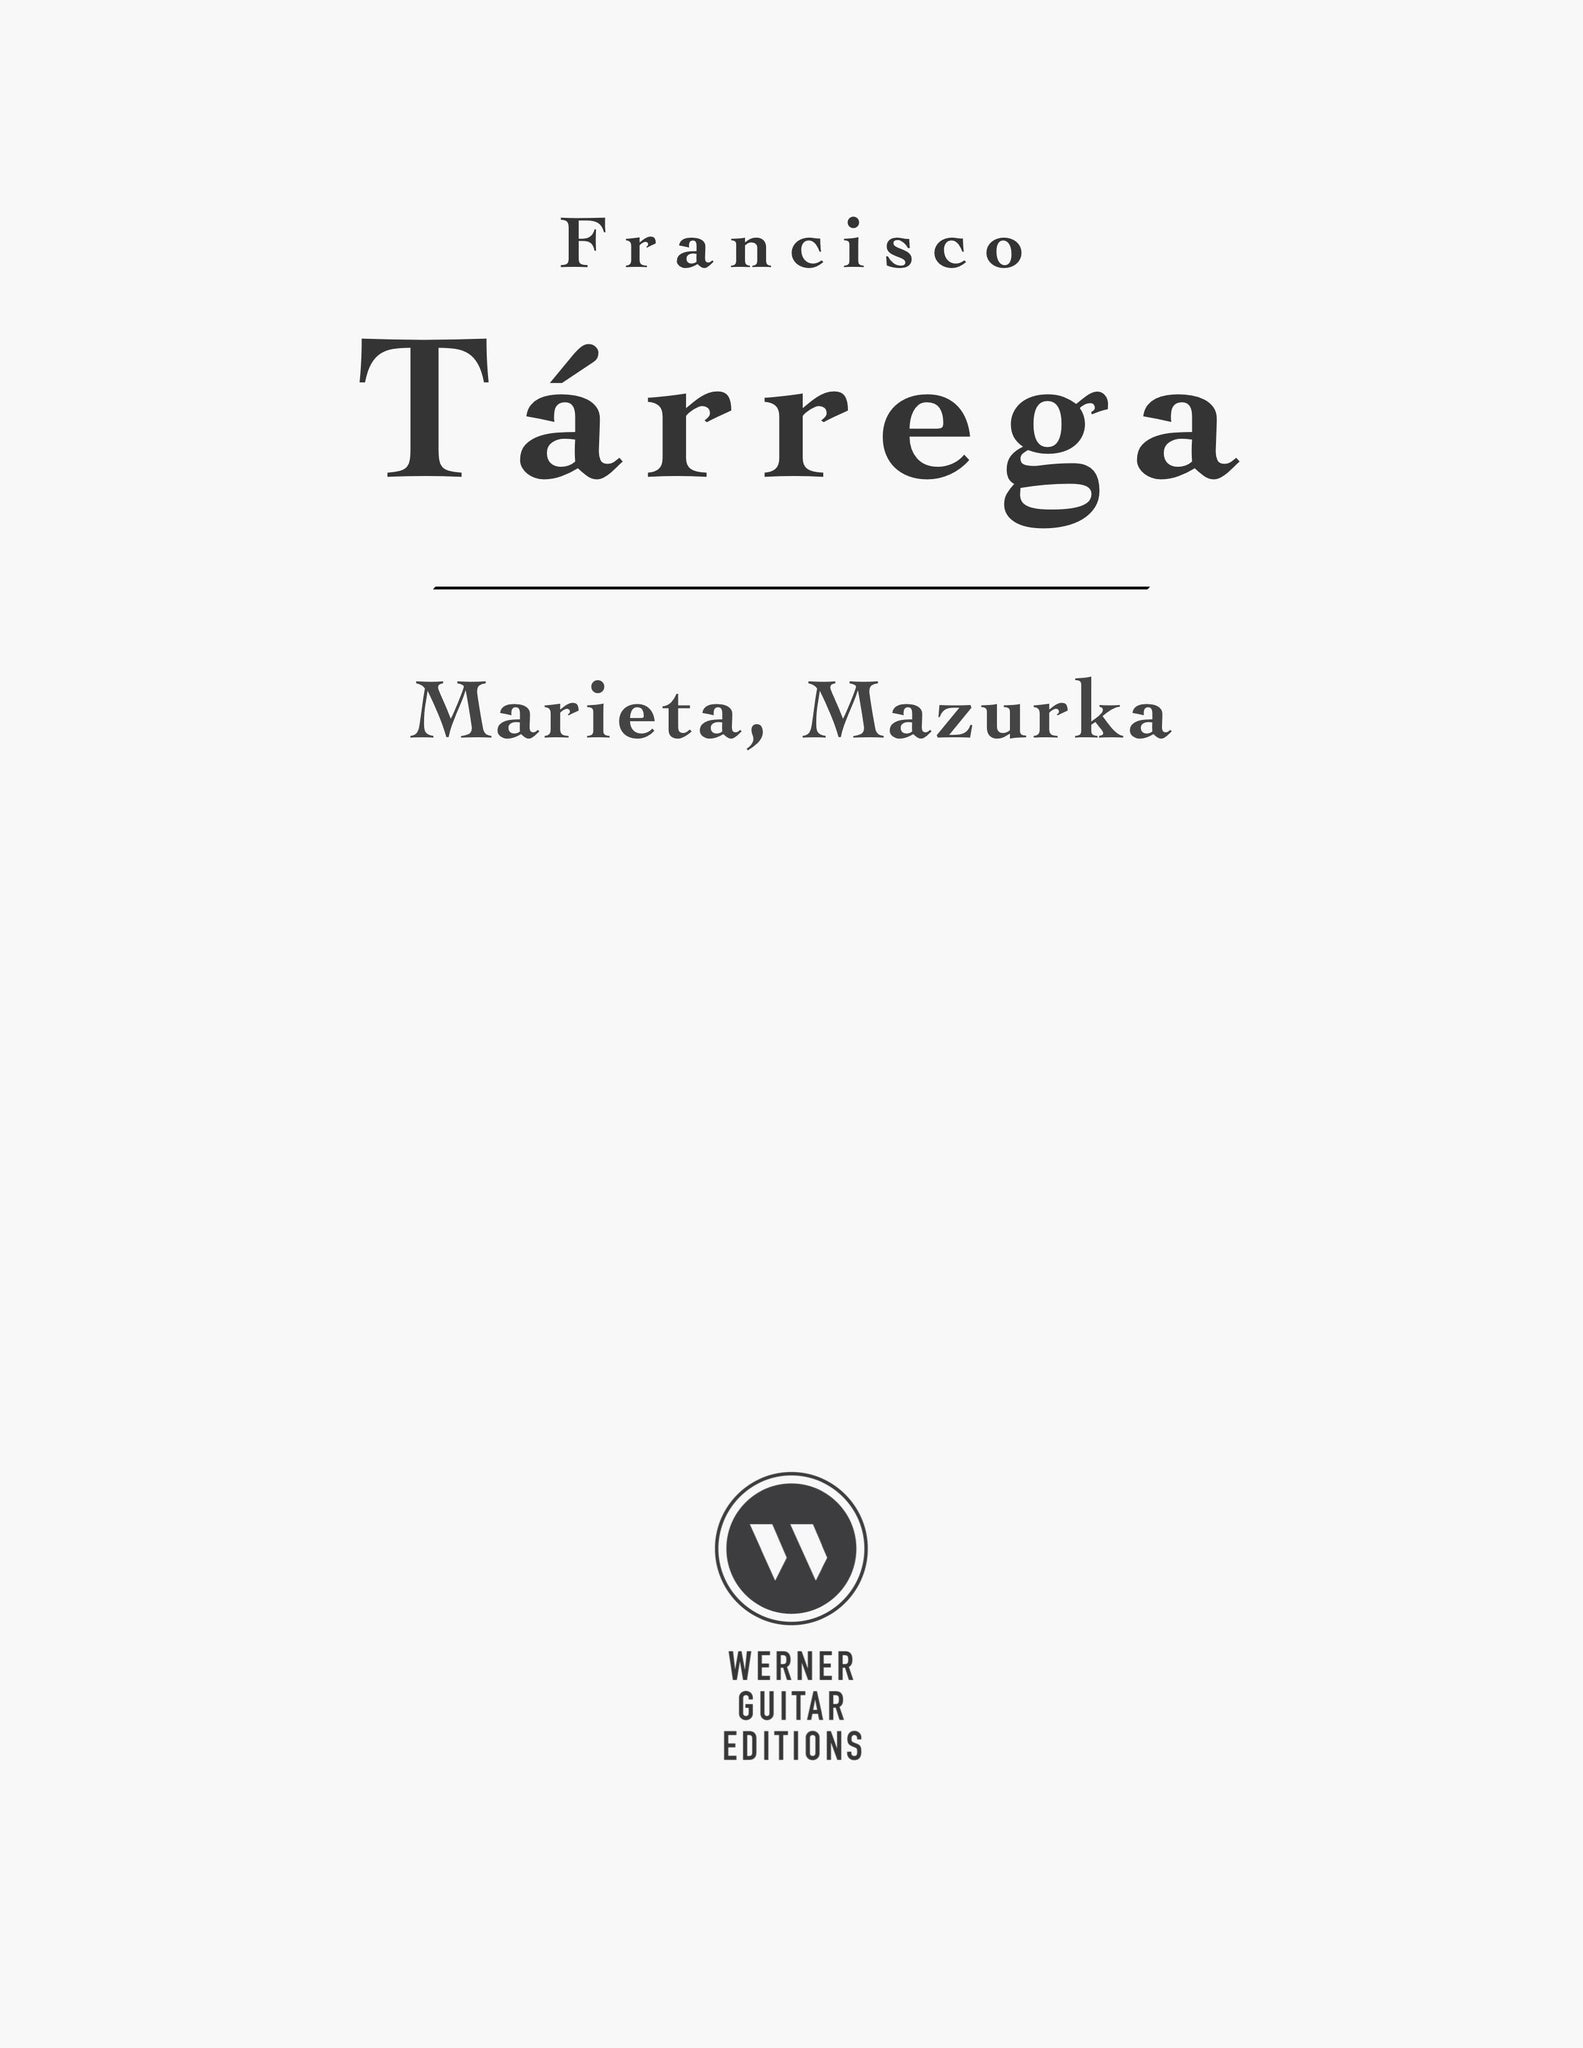 Marieta, Mazurka by Tárrega (Free PDF Sheet Music, or Tab)